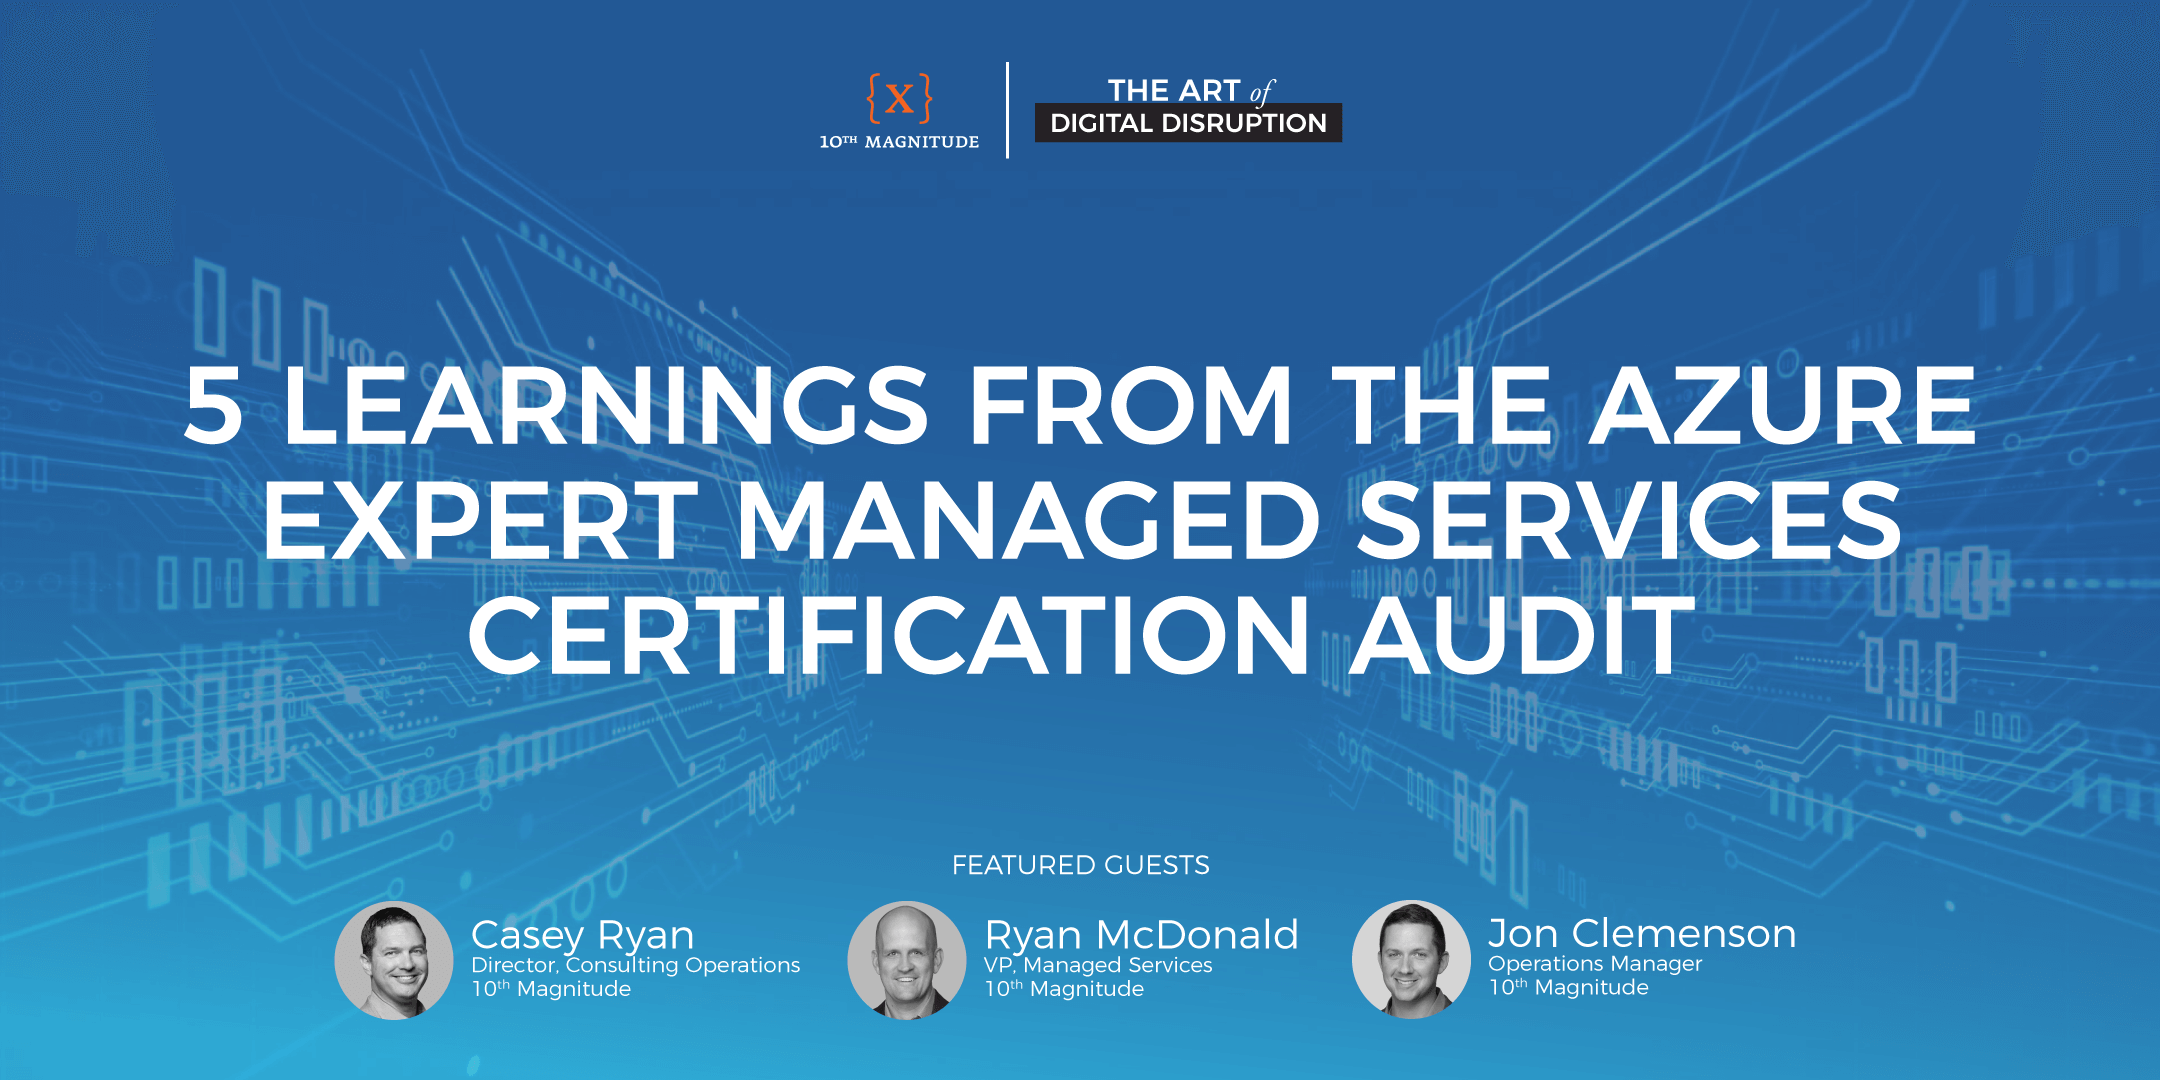 5 Learnings from the Azure Expert Managed Services Certification Audit